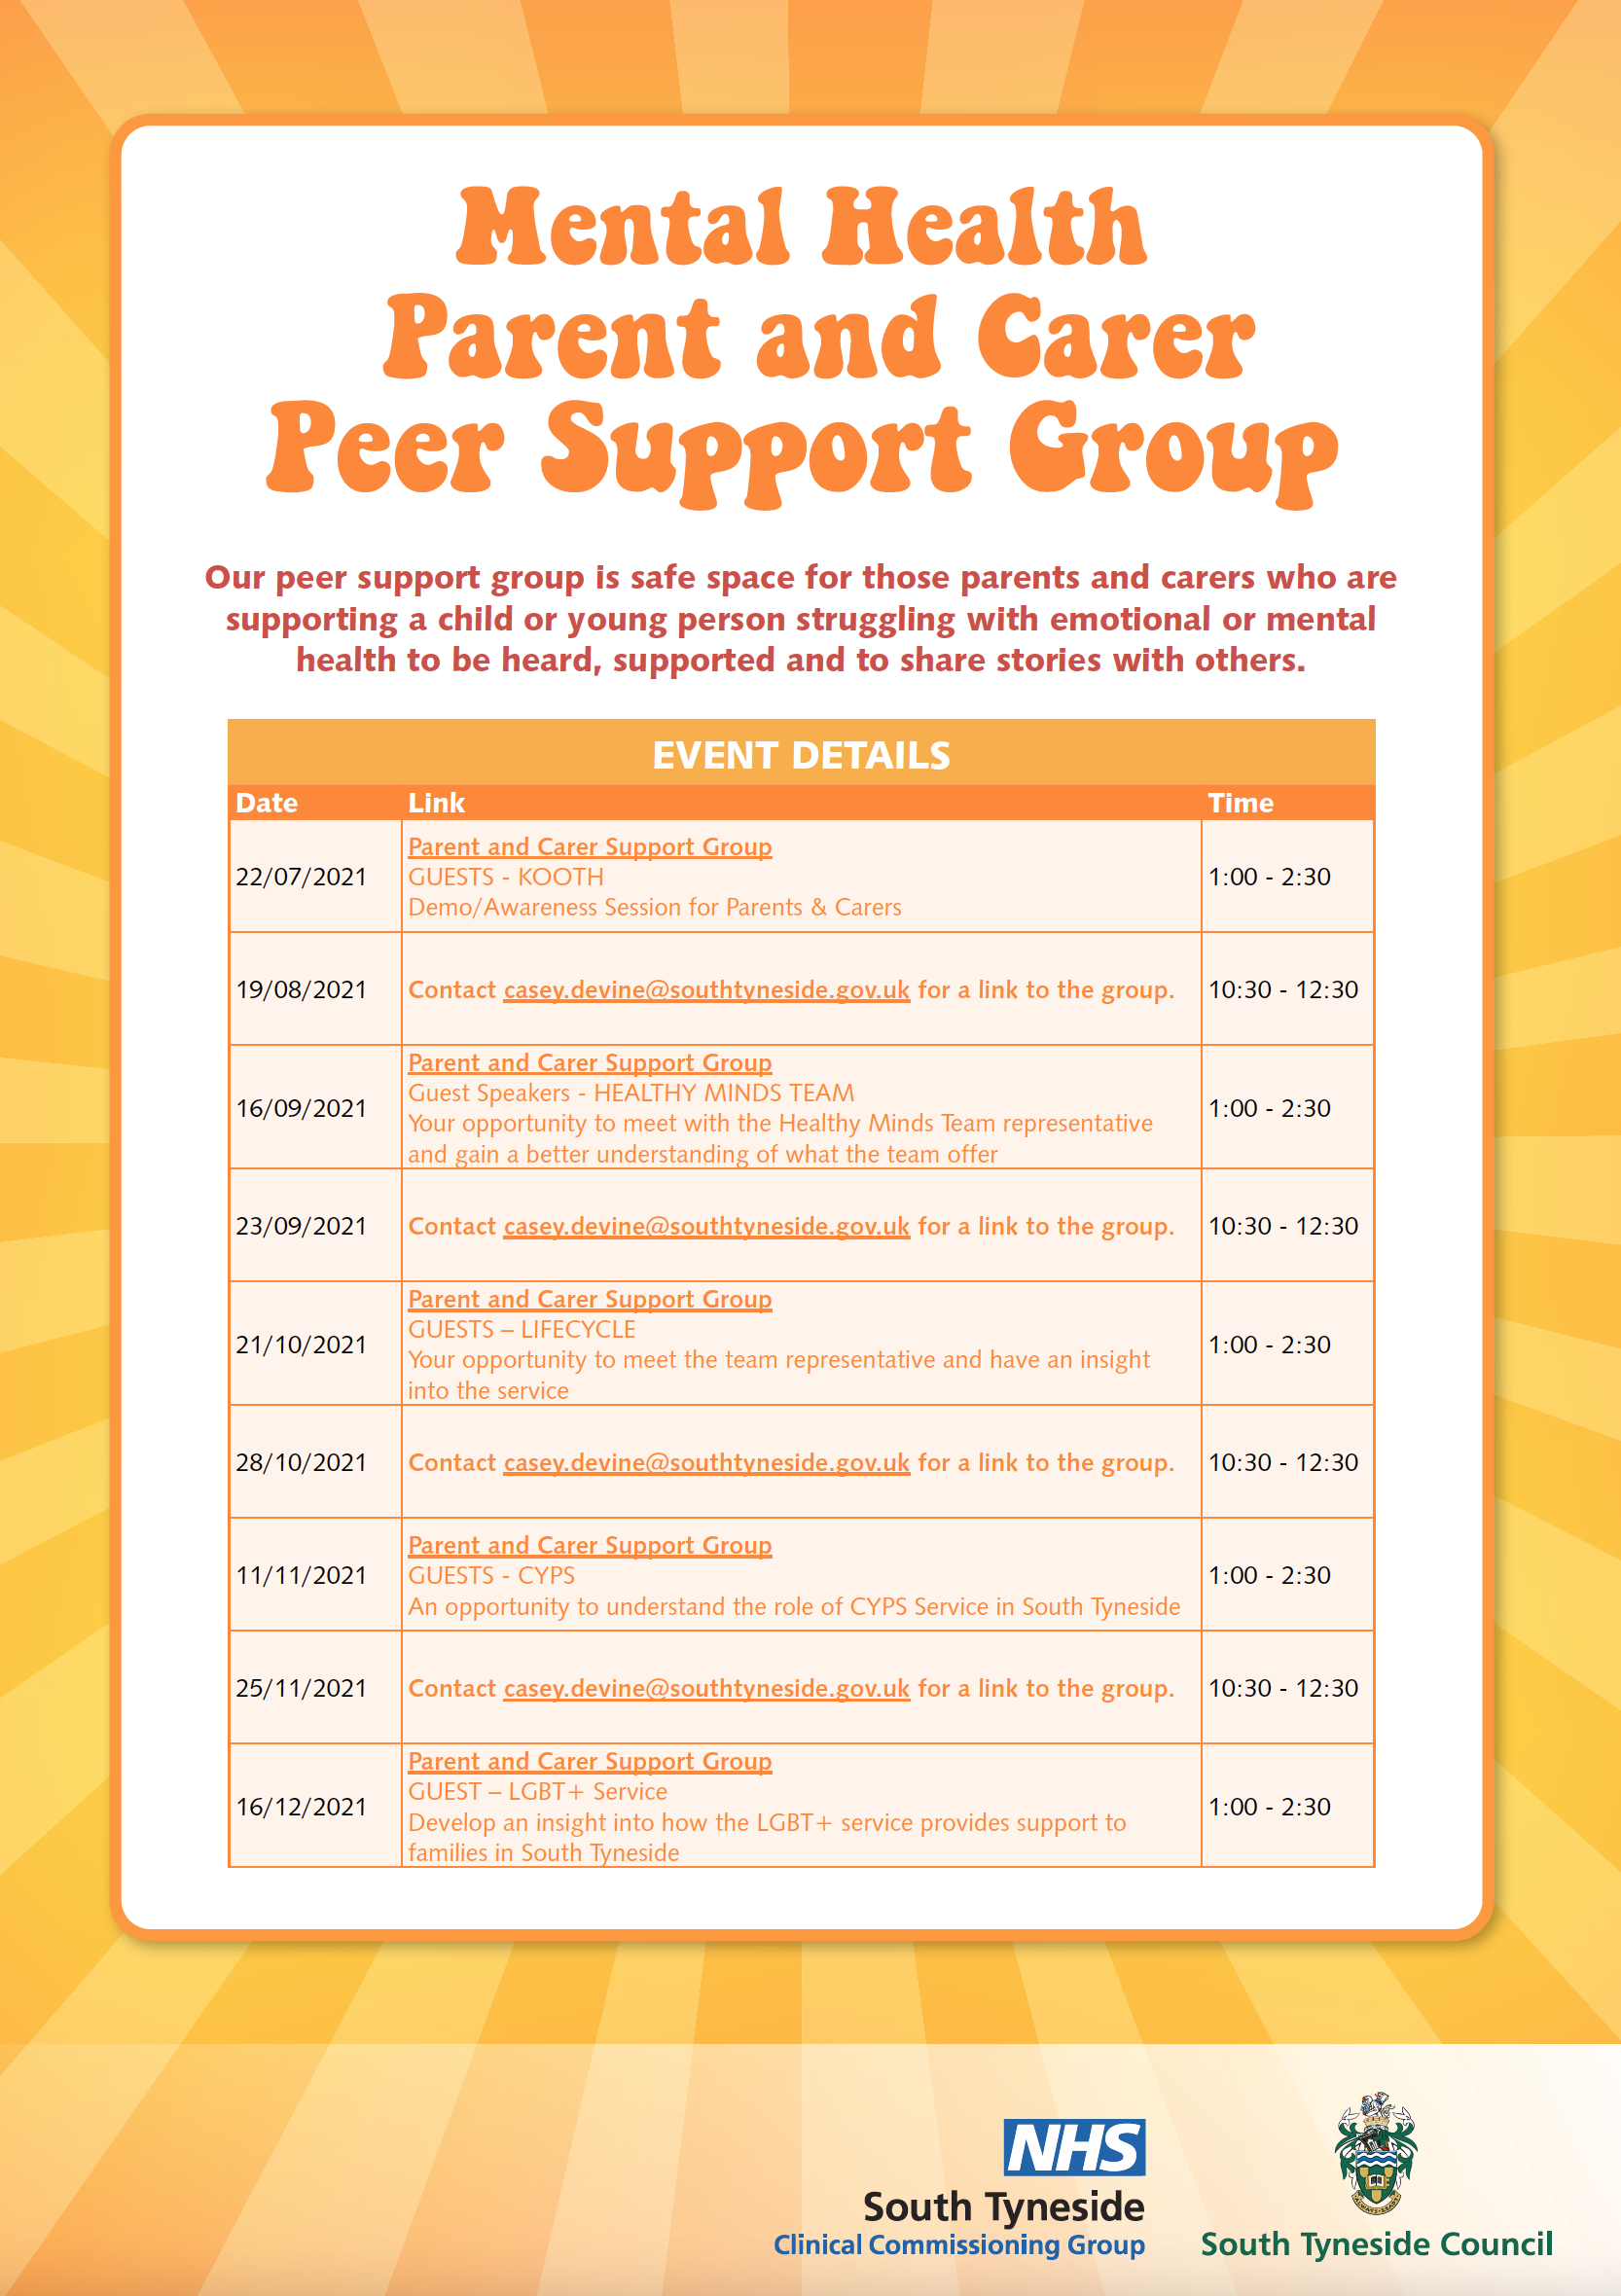 Mental Health - Parent and Carer Peer Support Group